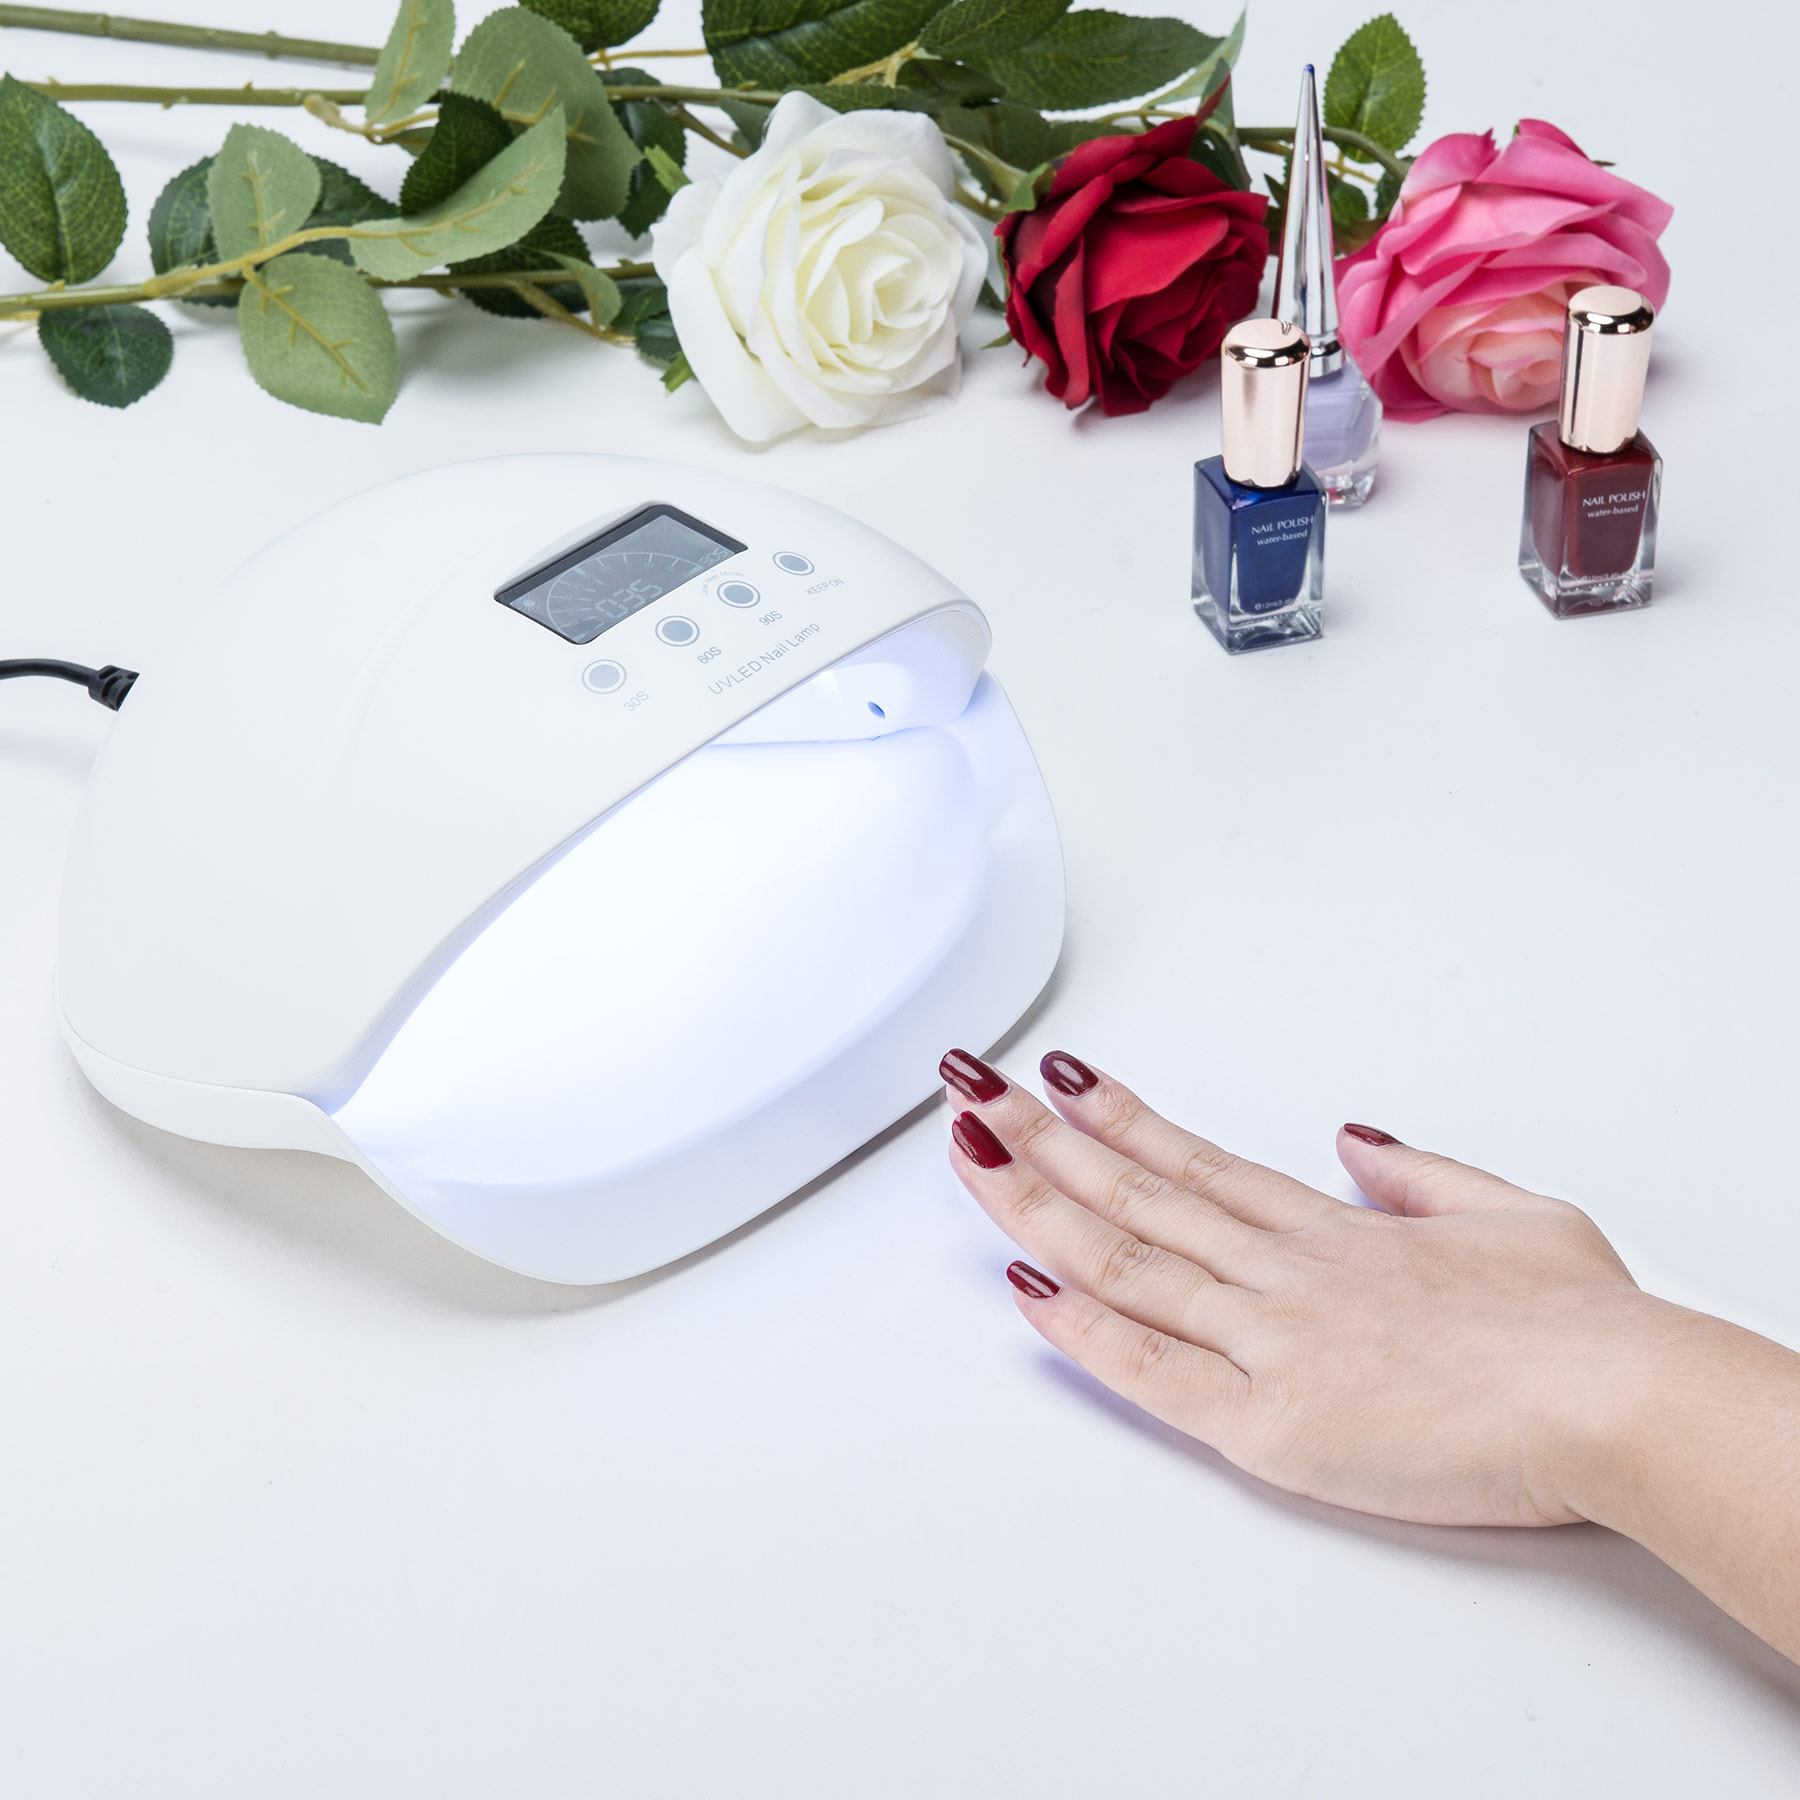 50W LED UV Lamp Nail Dryer Super Quick Curing with LCD Display Manicure Salon Tool for Gel Nail Polish with Infrared Sensor